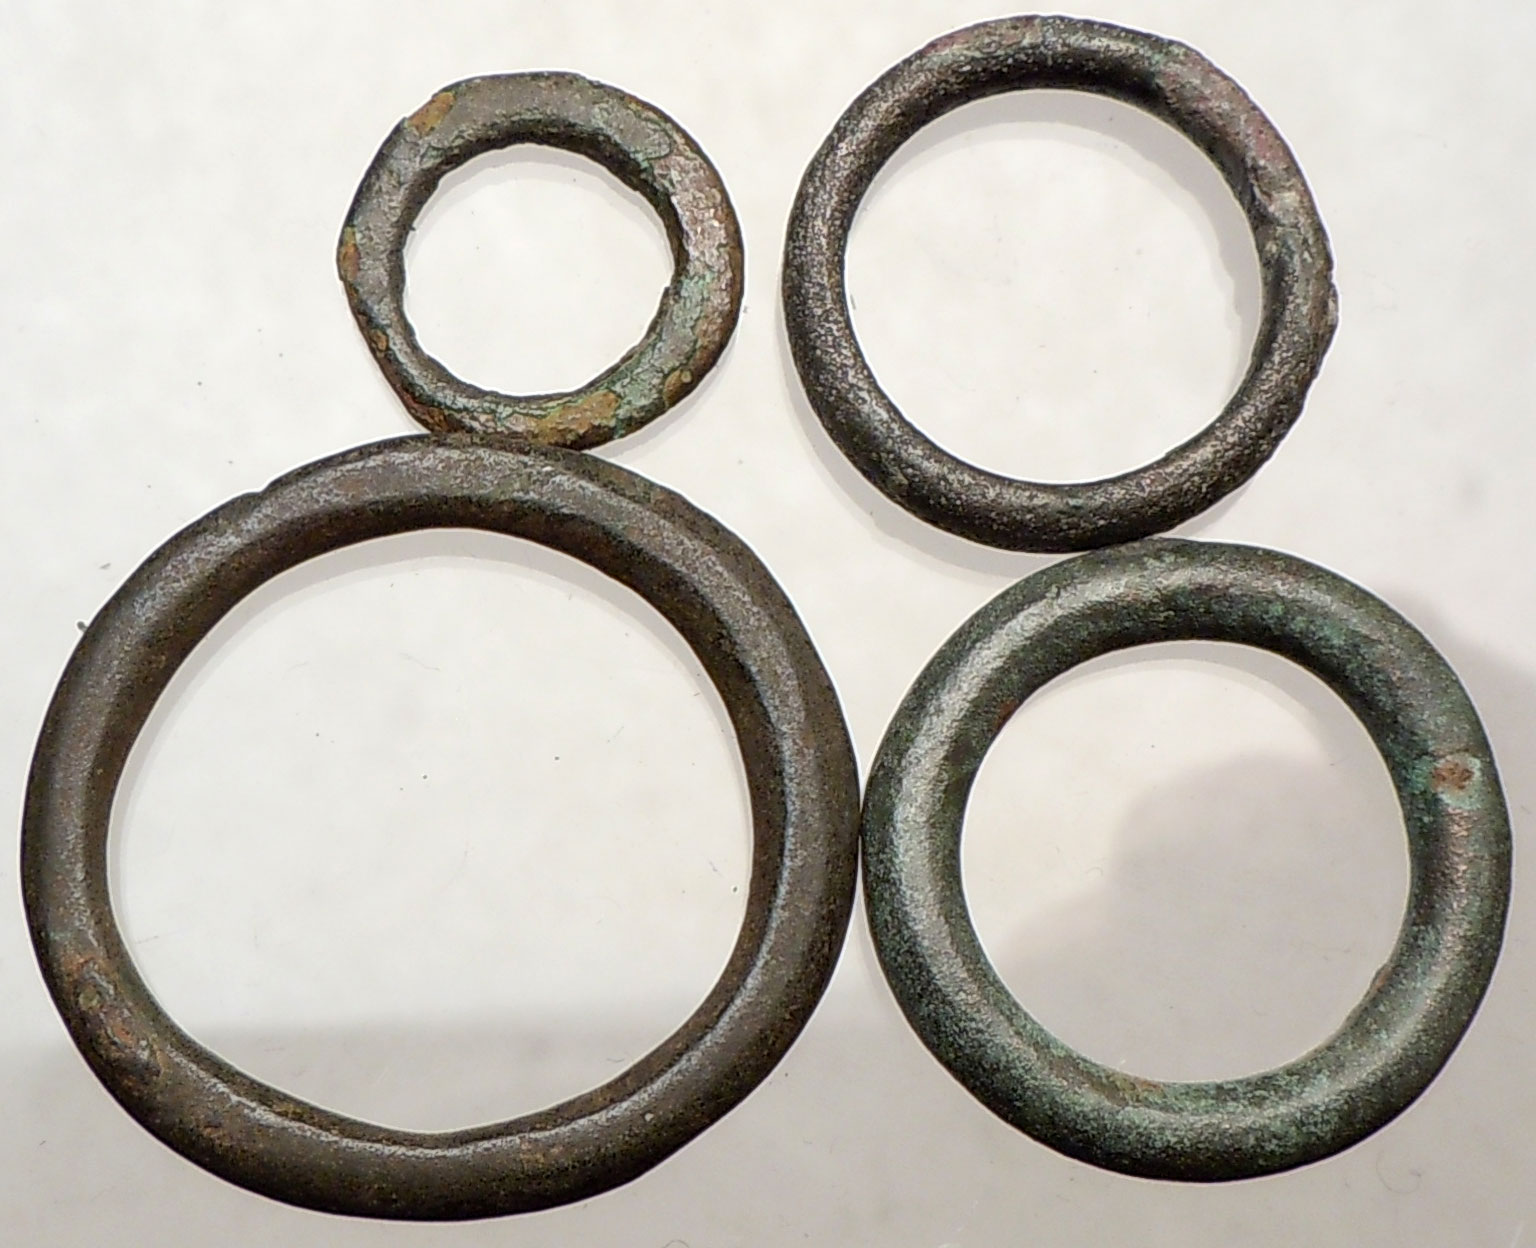 celtic 800bc authentic ancient ring money proto coin